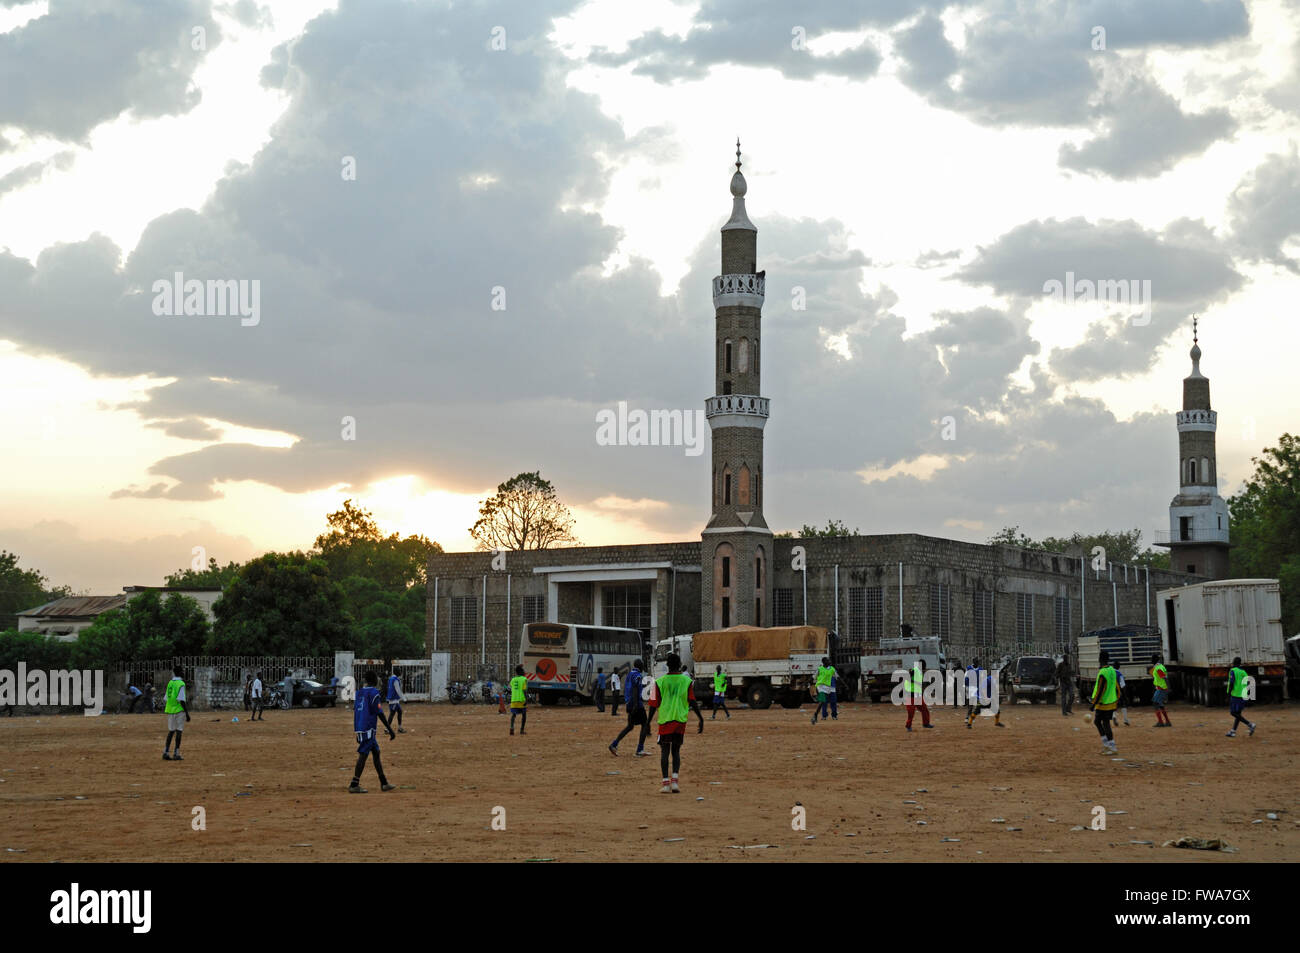 Youngsters playing football, by Mosque, in Juba, South Sudan. - Stock Image